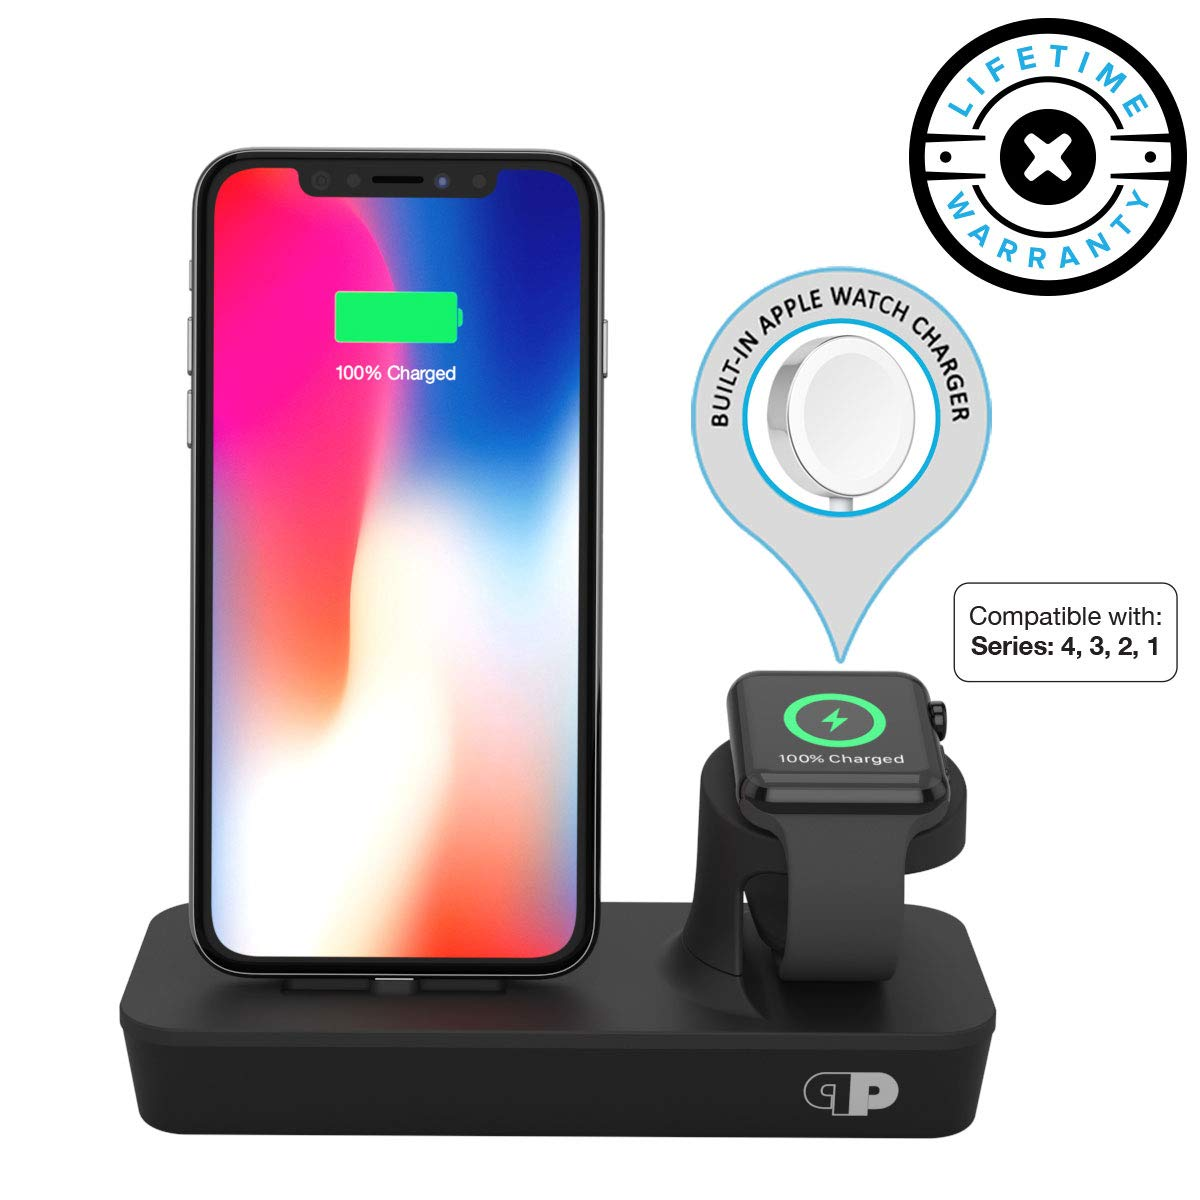 ONE Dock Duo (MFi CERTIFIED) Power Station Dock, Stand & Charger with Built-in ORIGINAL Charger for Apple Watch Smart Watch (Series 5,4,3,2,1, Nike+) for iPhone 11Pro/Max/X/XR/Max/8/7/Plus & iPod by Press Play